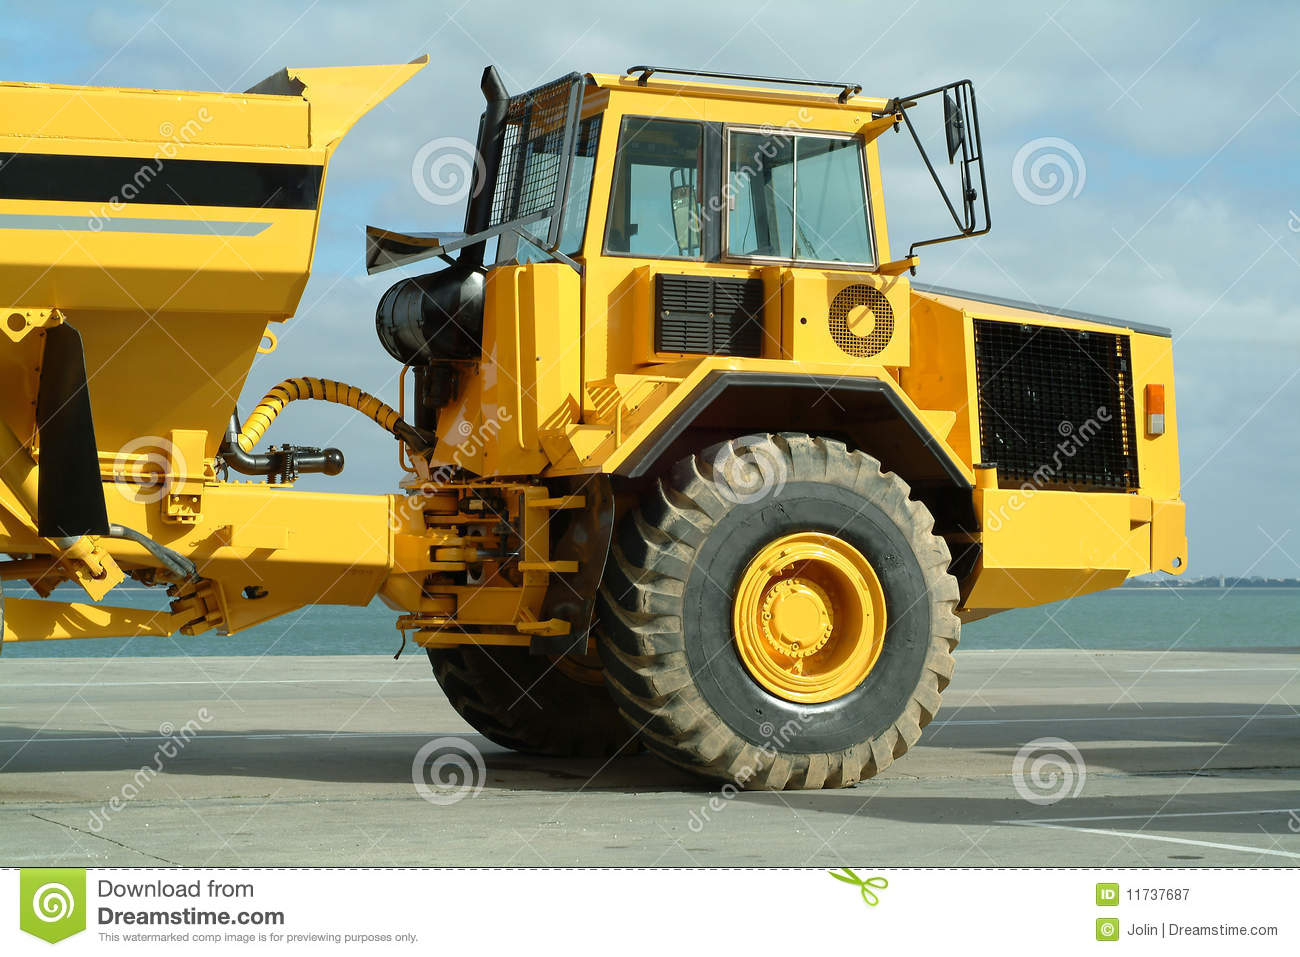 grand camion de dumper dans le chantier de construction image stock image du dumper fret. Black Bedroom Furniture Sets. Home Design Ideas